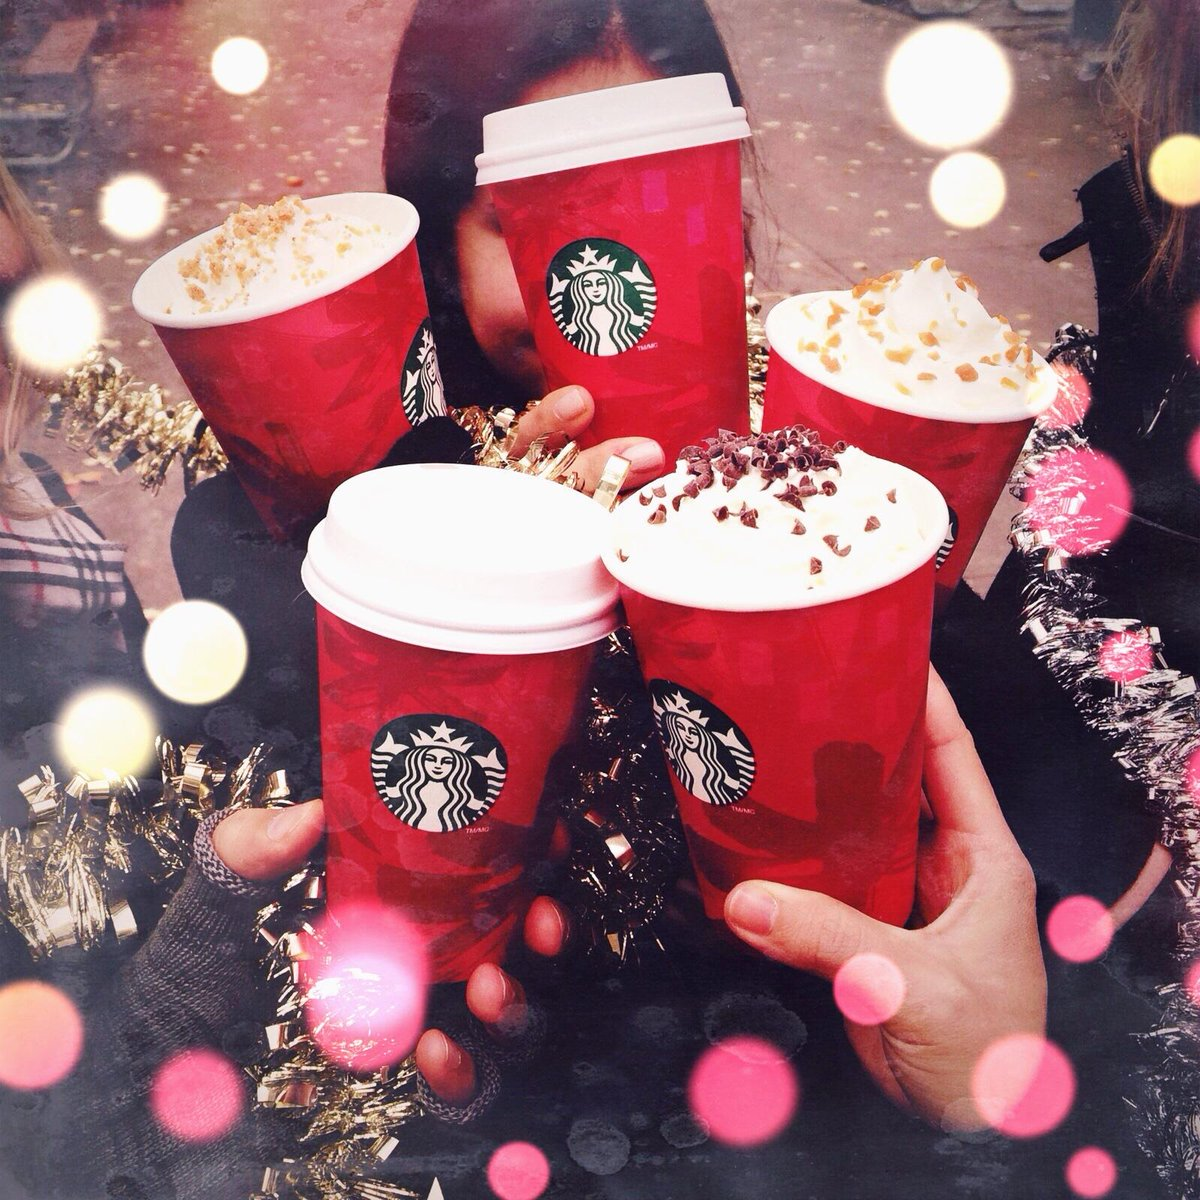 It's the most wonderful time of the year! ❄⛄ #sharejoy #redcups http://t.co/uyhHkBhPdq